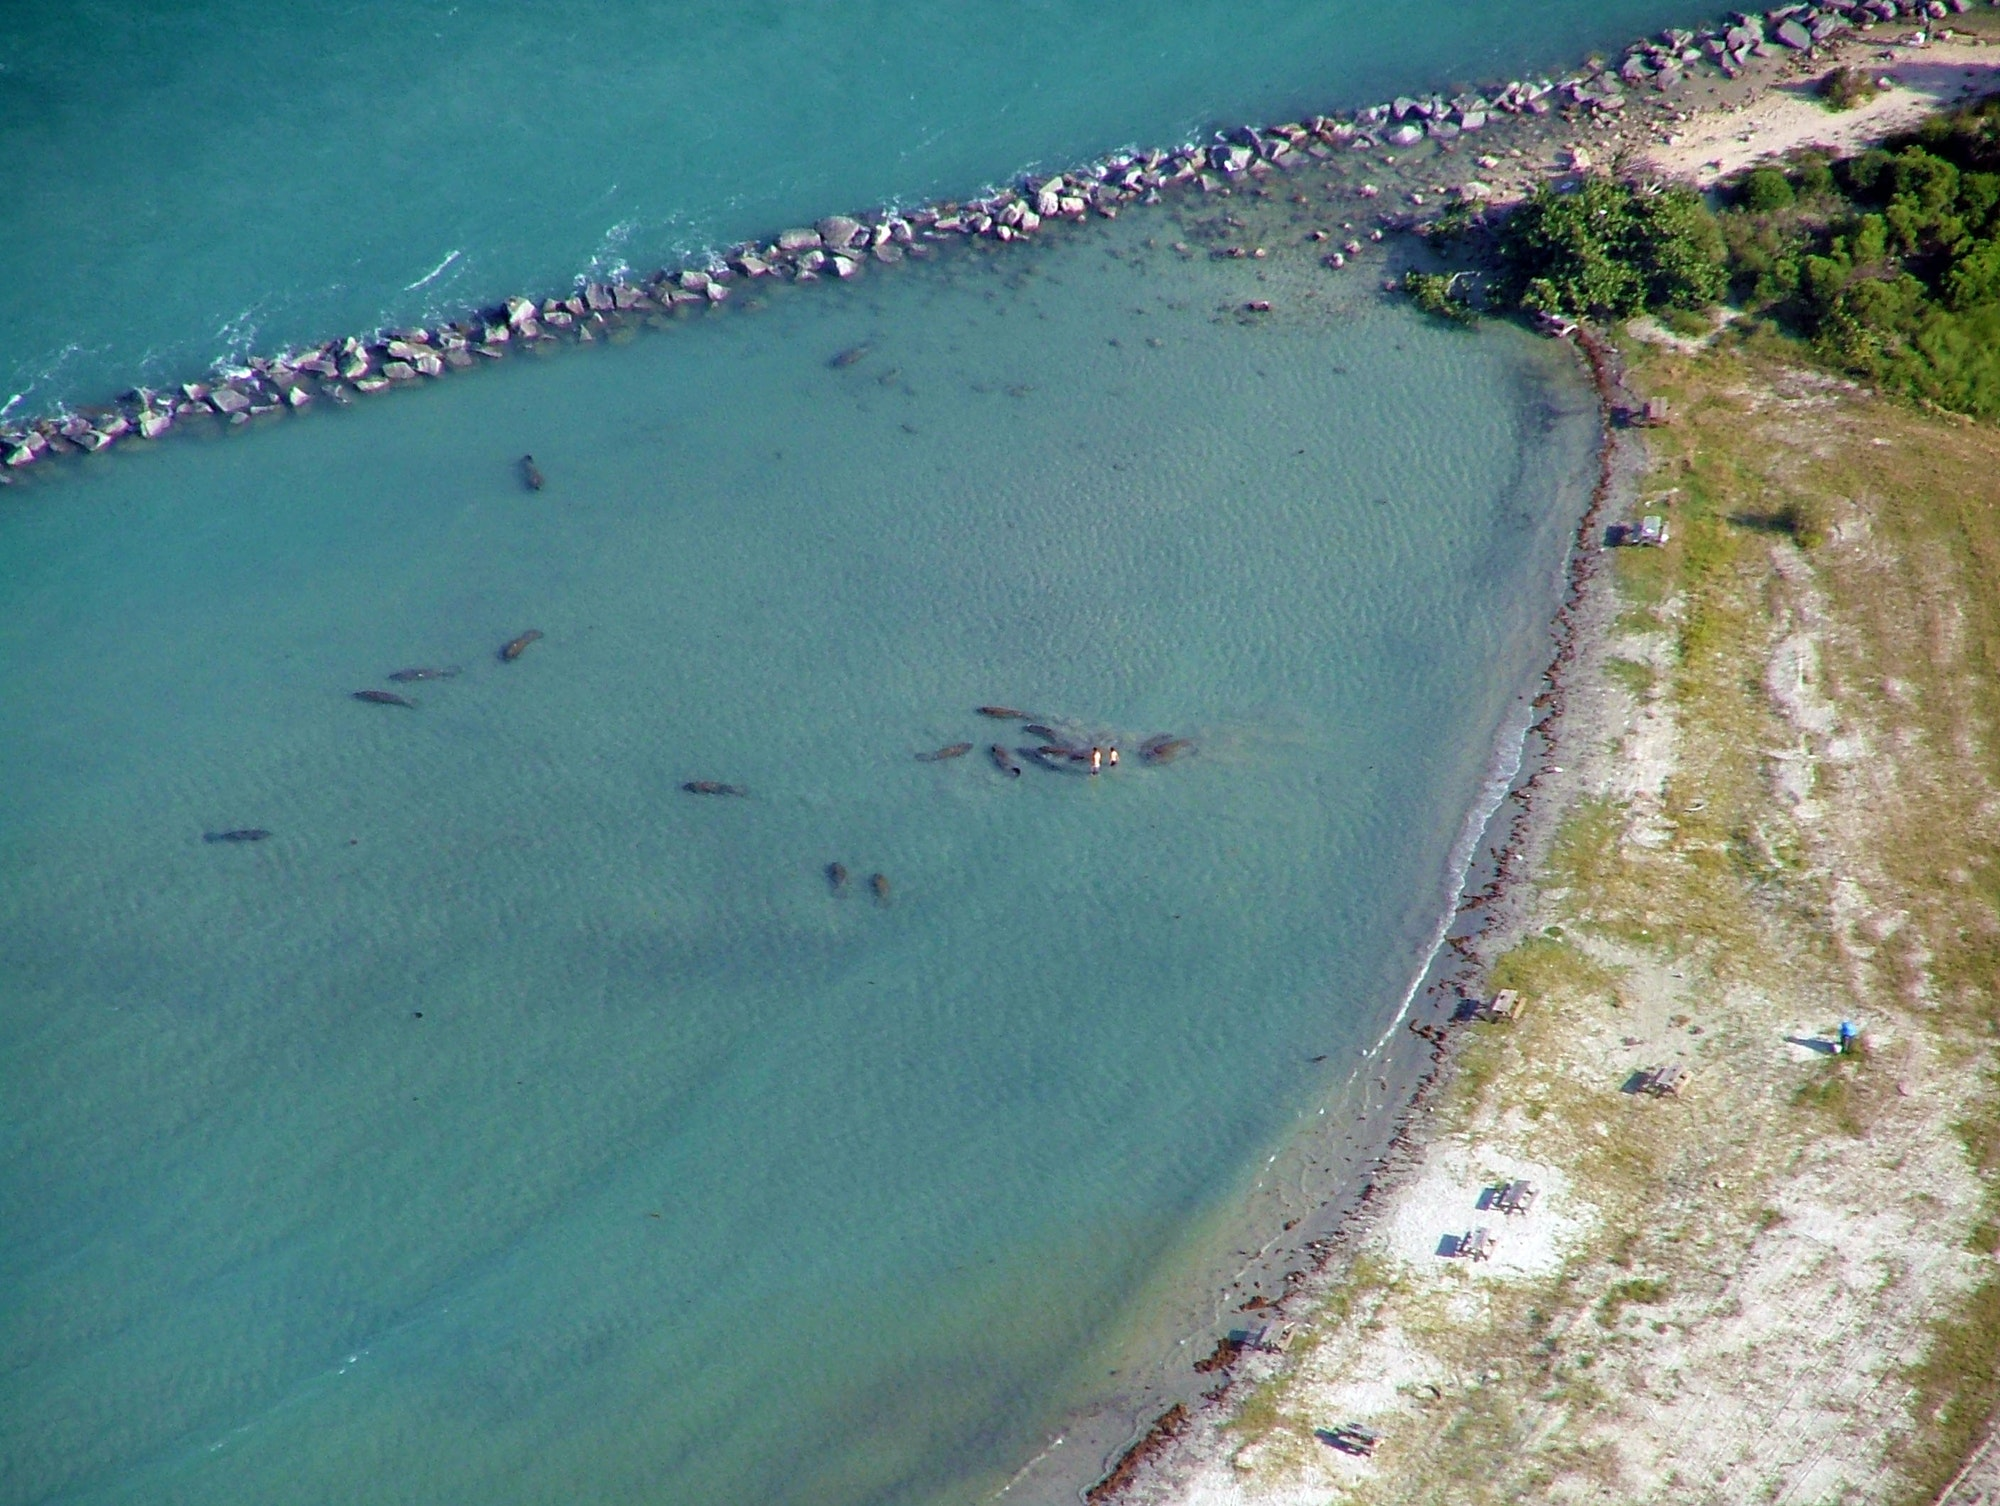 aerial view of manatees in the tide pool at Sebastian Inlet